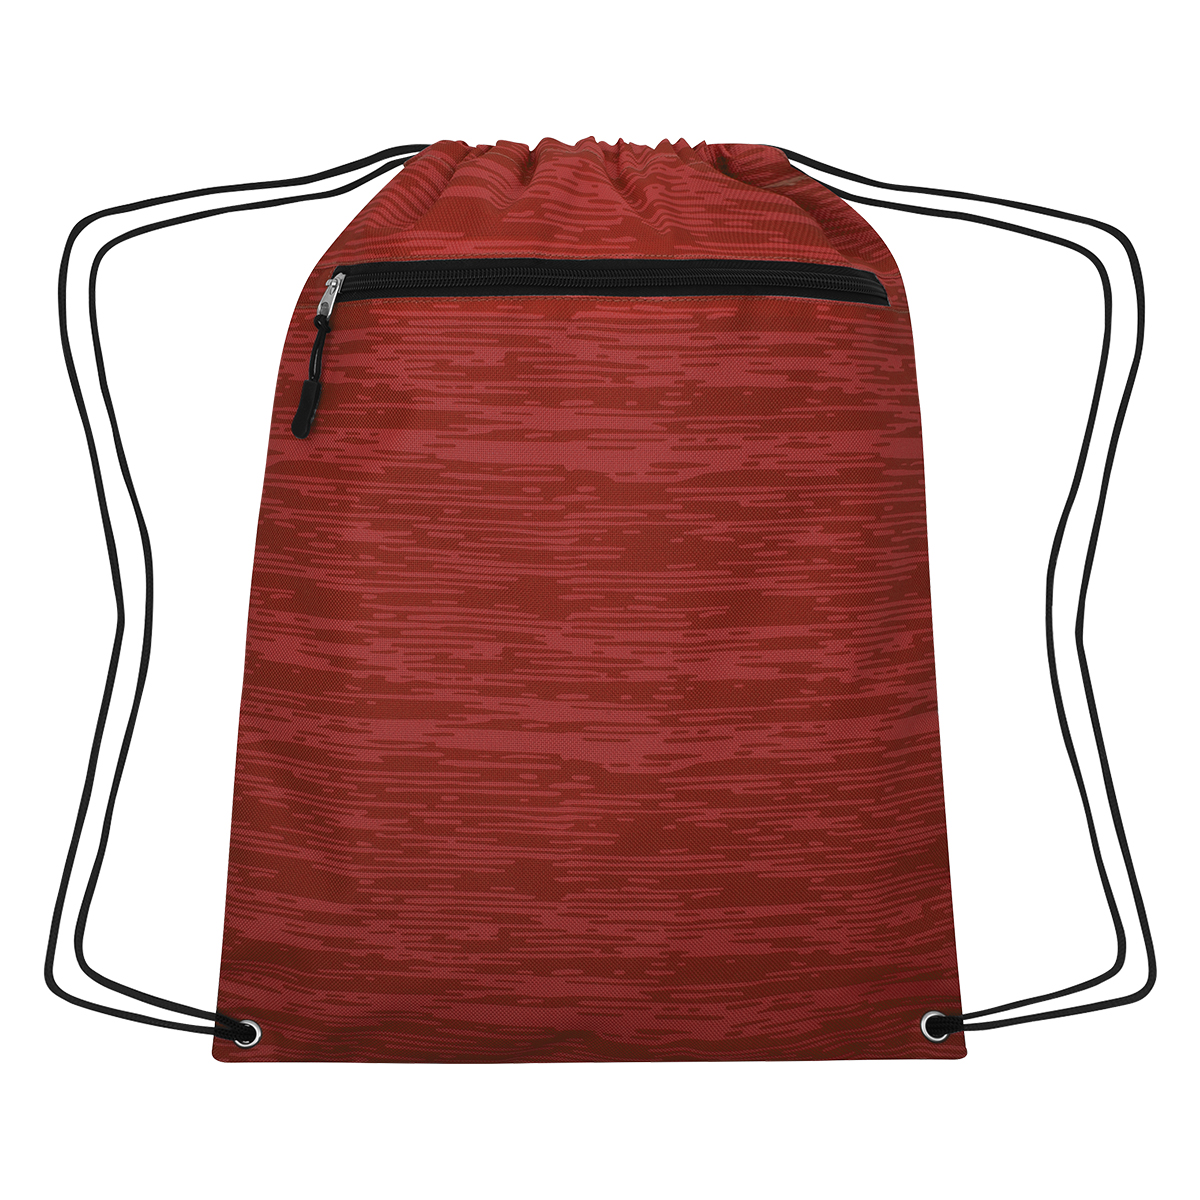 Printed Tempe Drawstring Bag